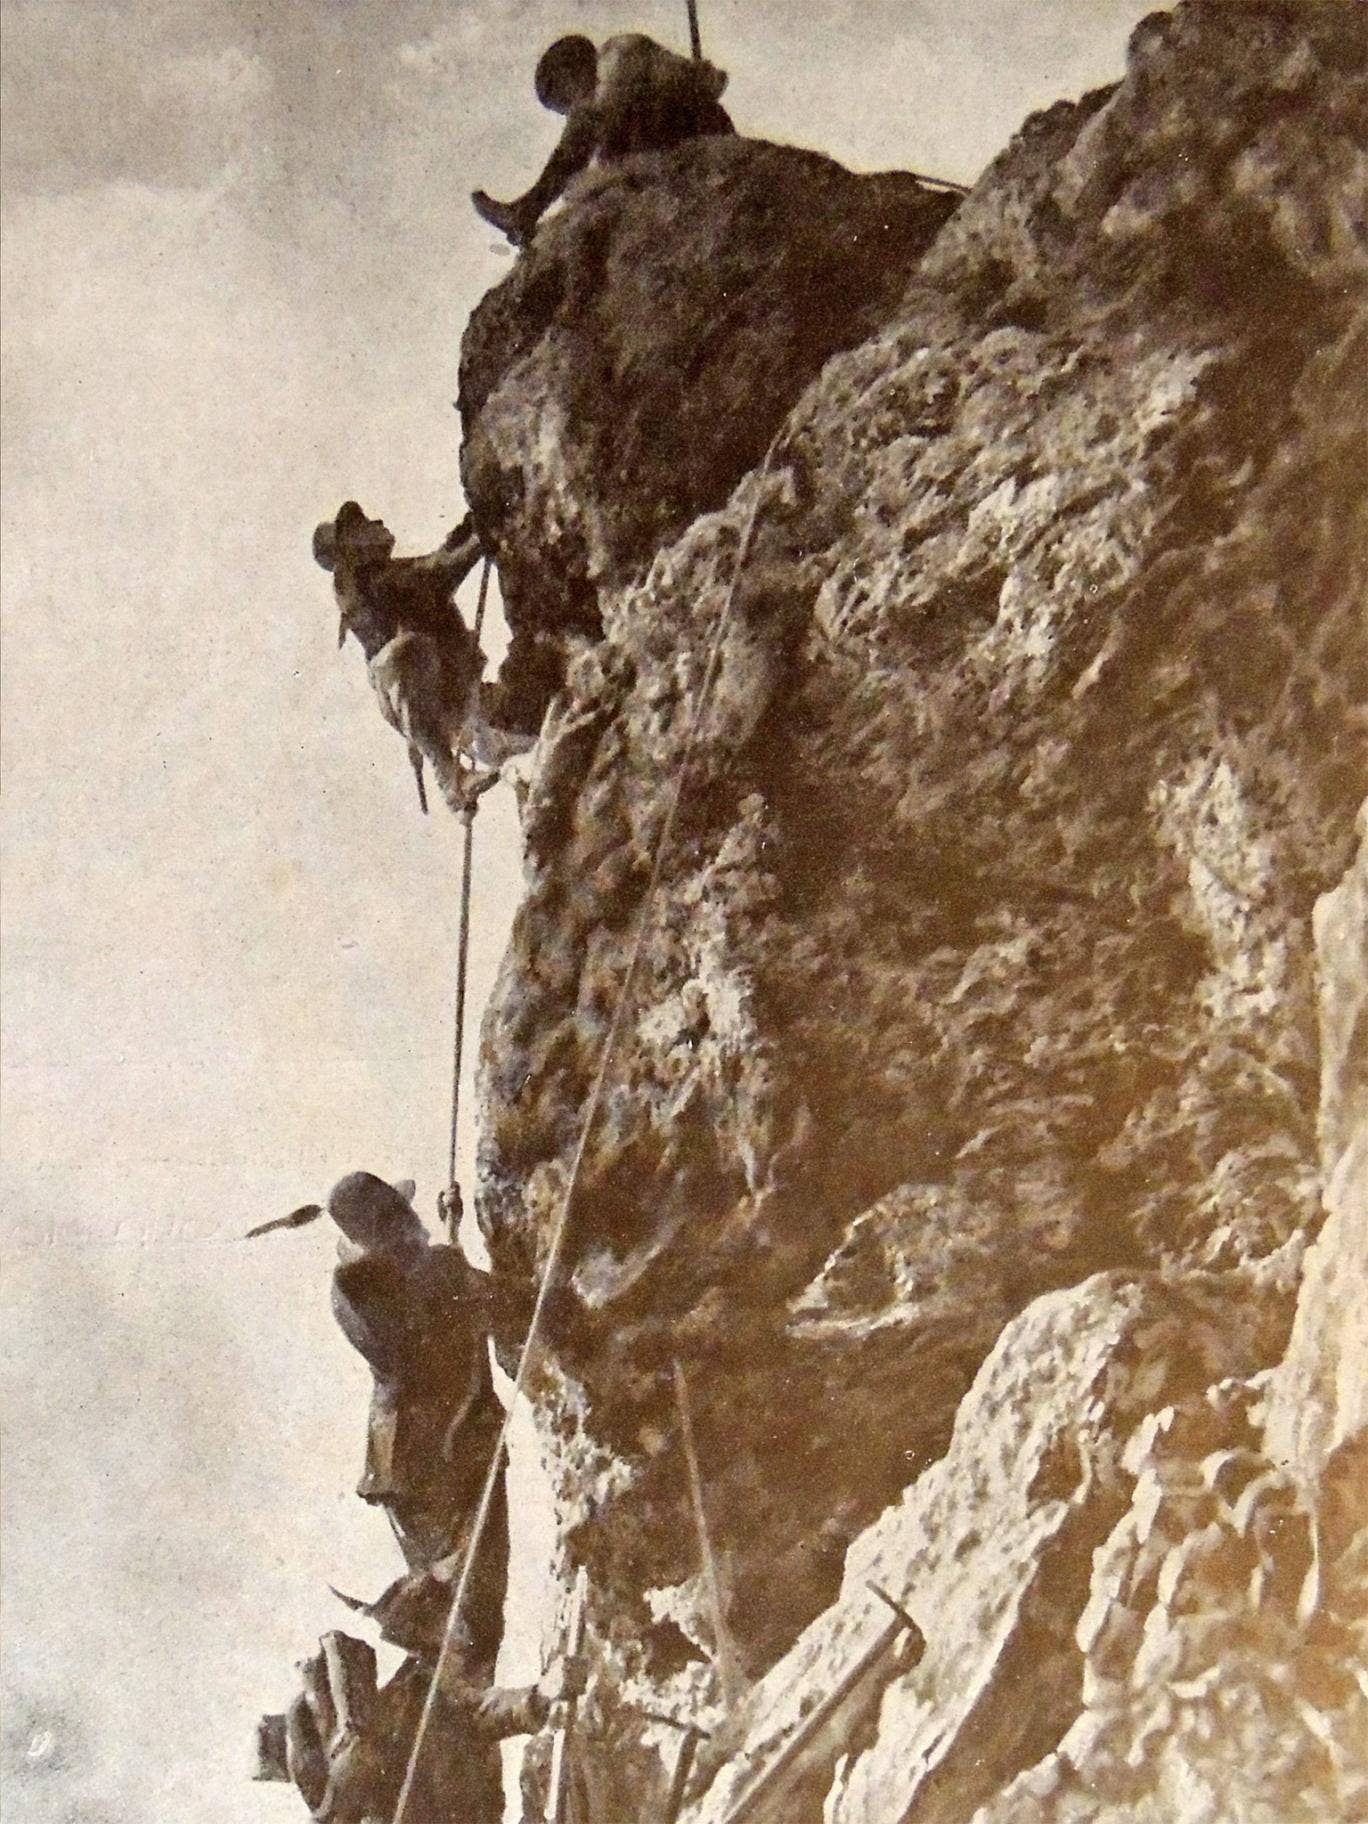 Italian light infantry of the 1st Alpini Regiment on Monte Nero, during the Isonzo campaigns